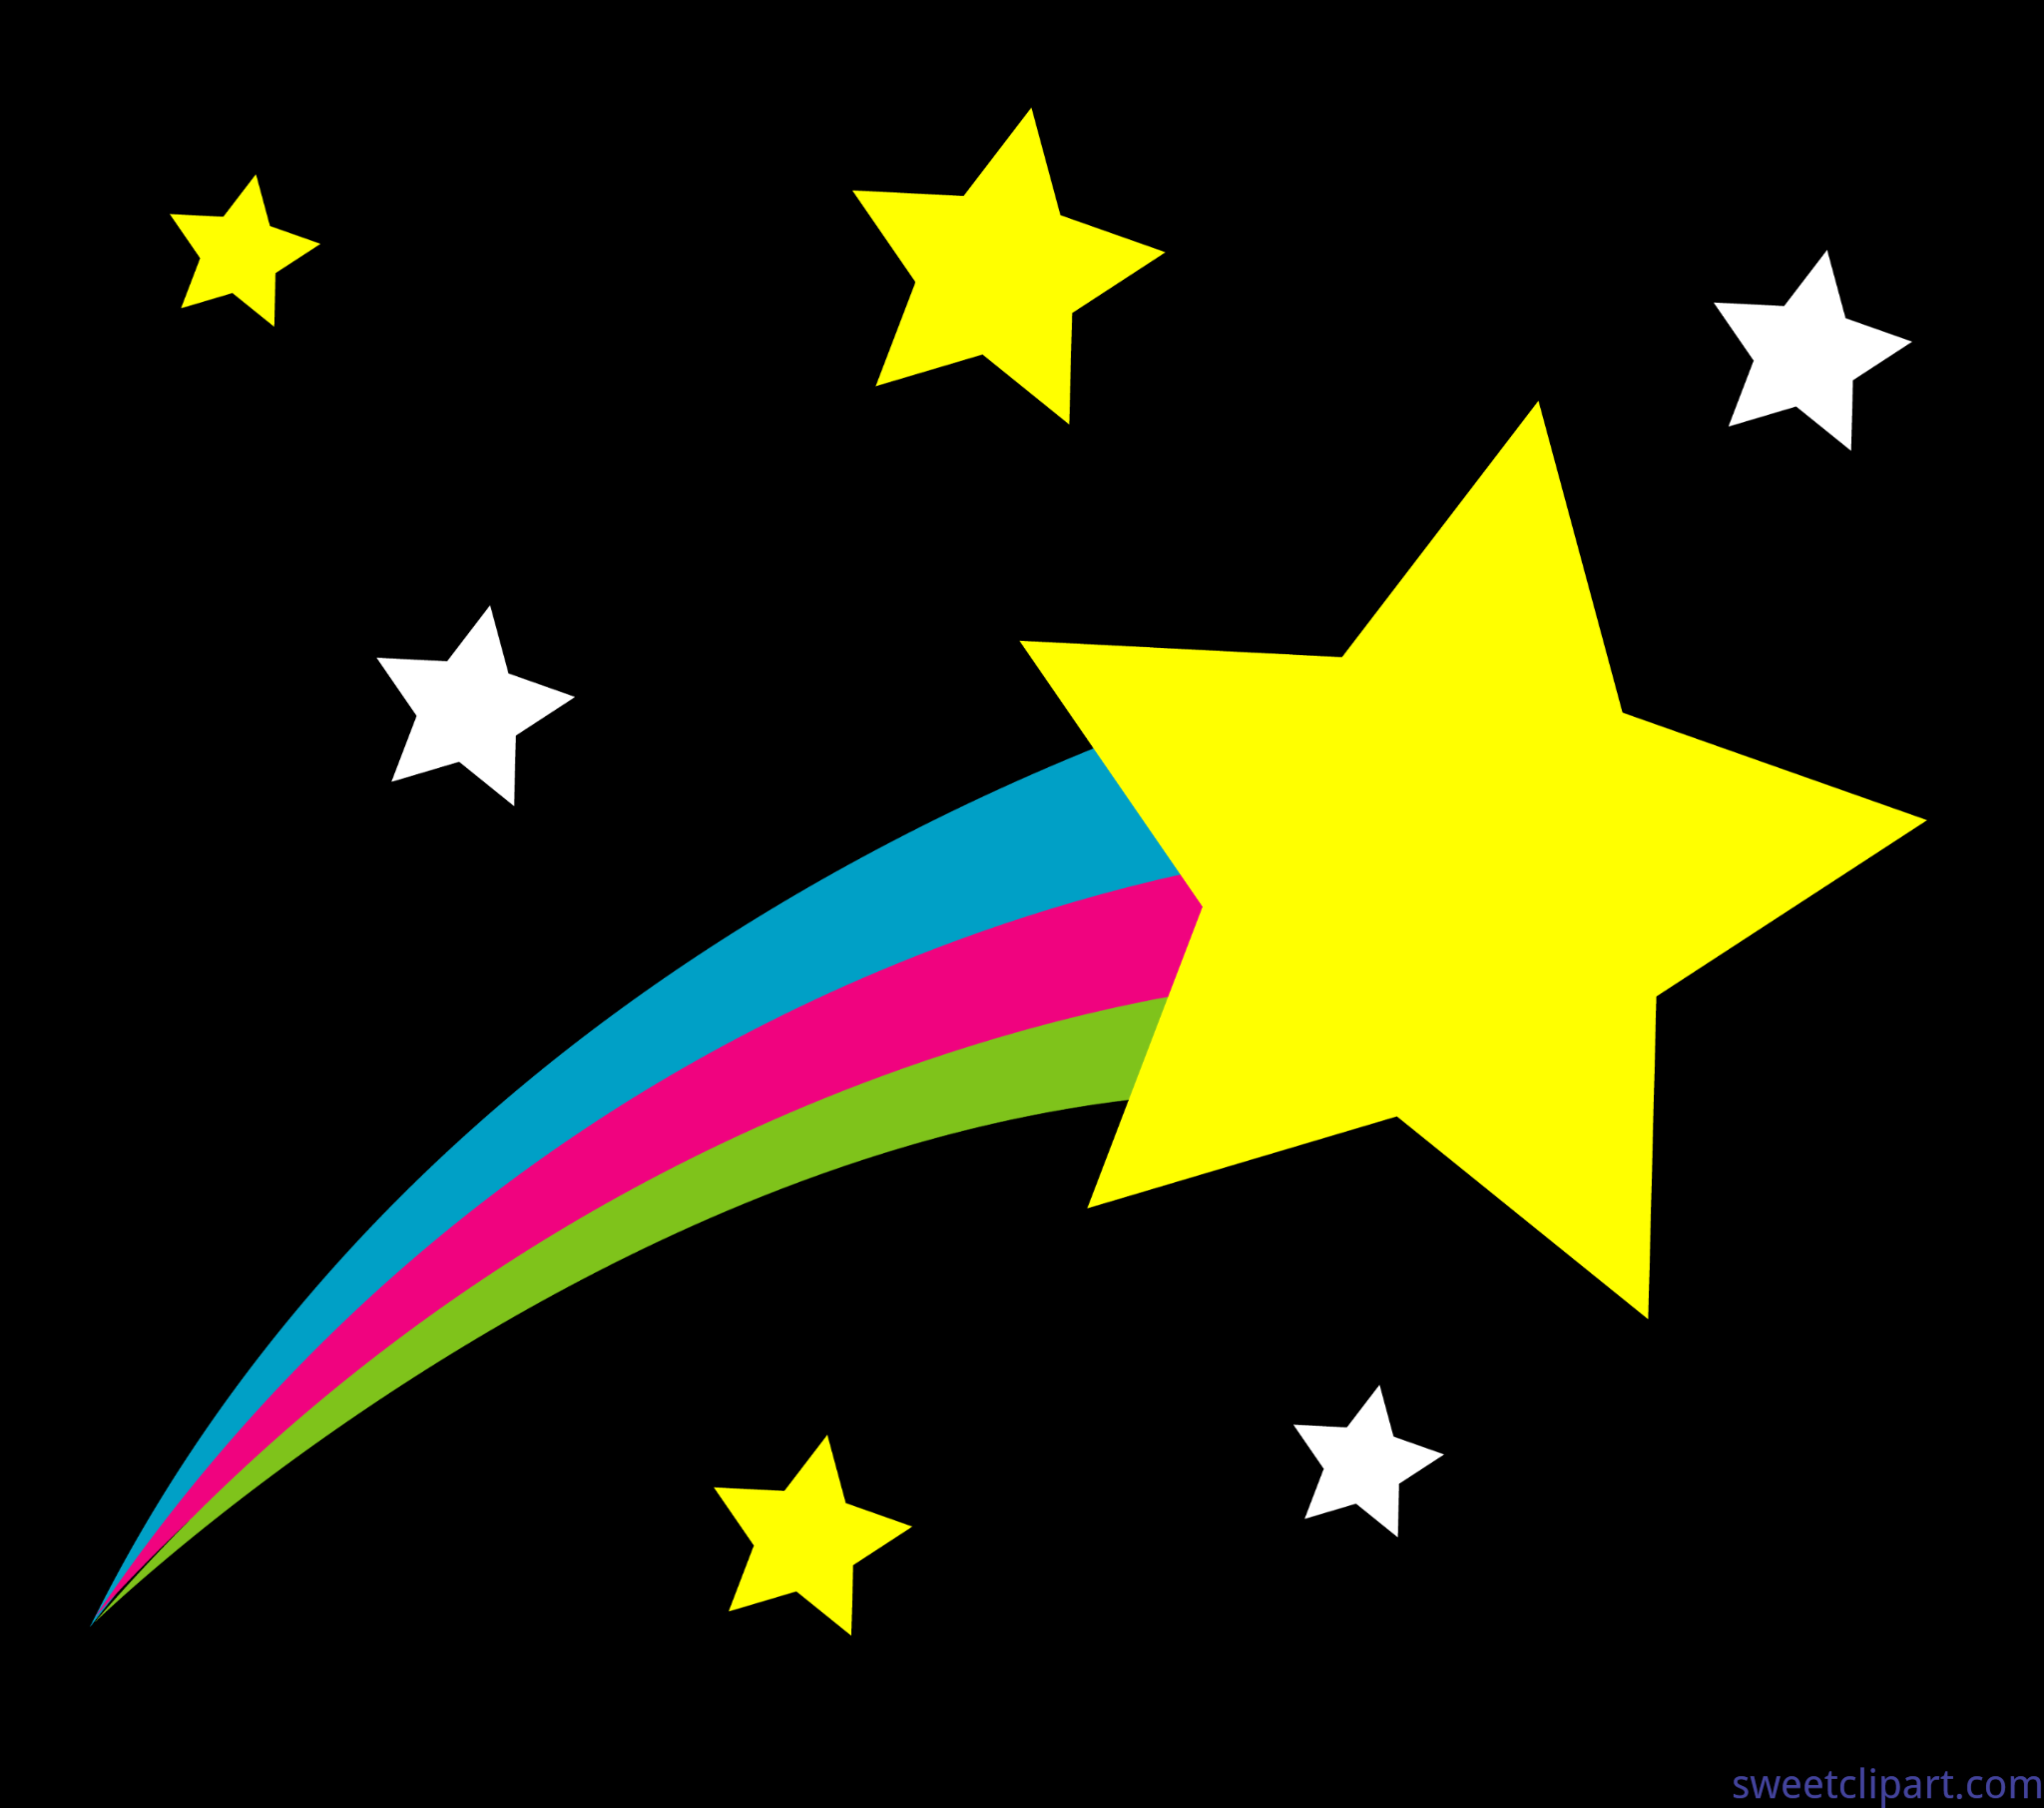 Black clipart shooting star. Outer space background clip